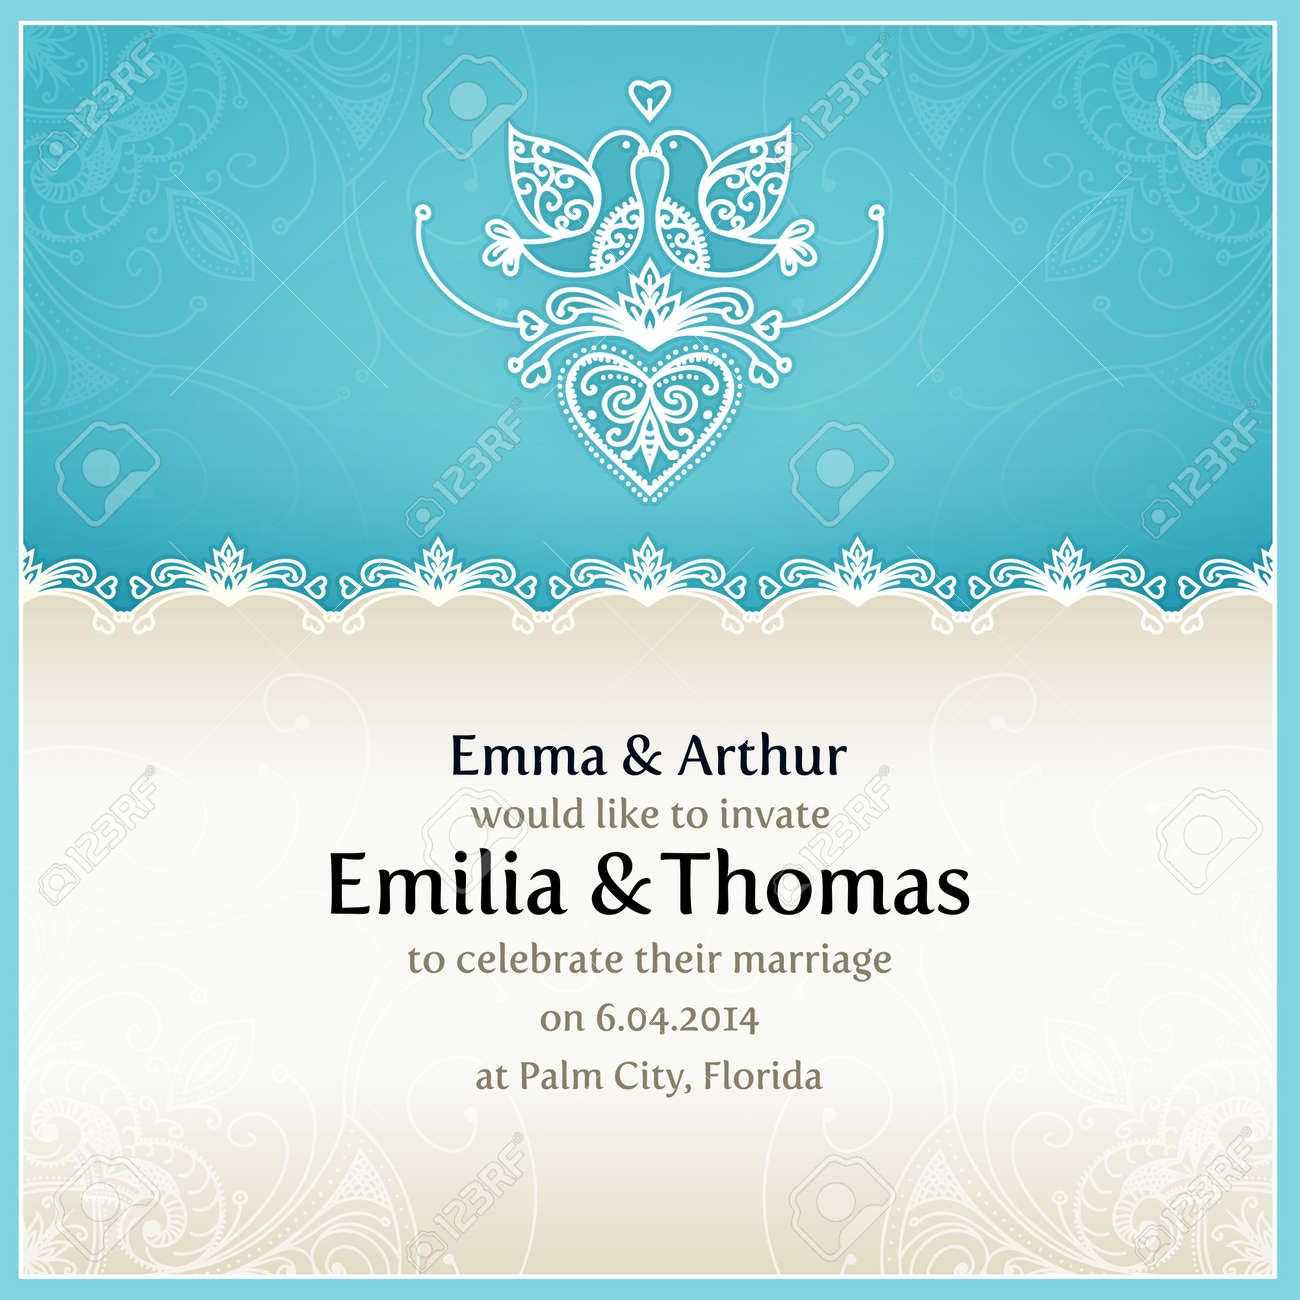 Blue wedding invitation design template with doves hearts blue wedding invitation design template with doves hearts flowers and geometrical lace ornament stopboris Image collections